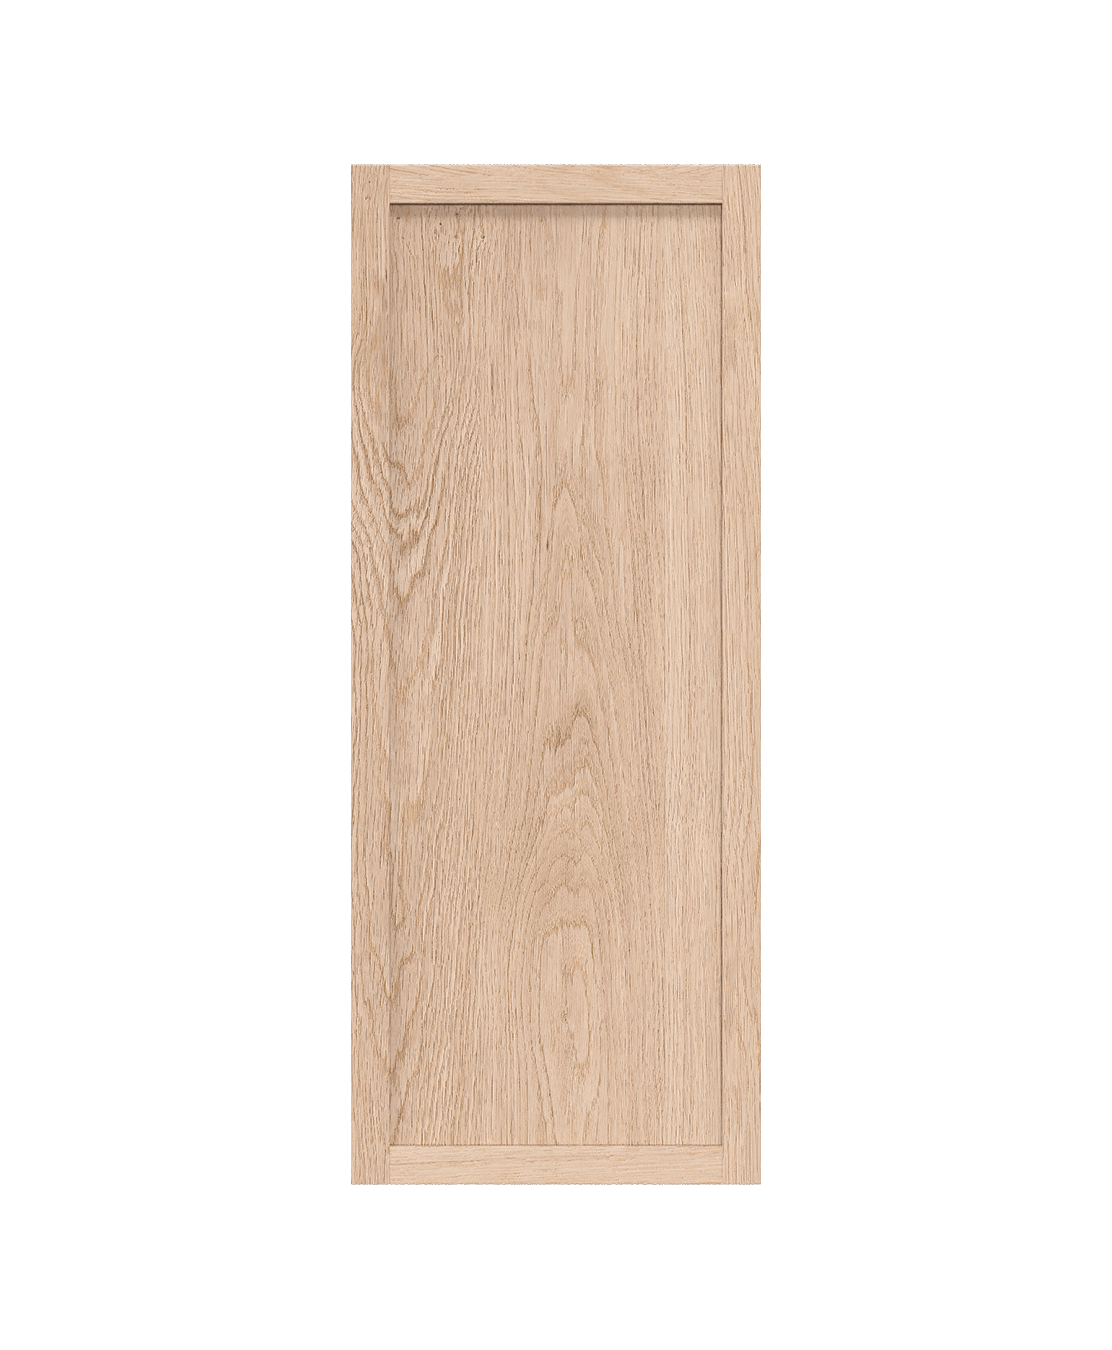 coquo radix white oak solid wood modular 2 glass doors open wall upper kitchen cabinet 12 inch C1-W-1212-0000-NA